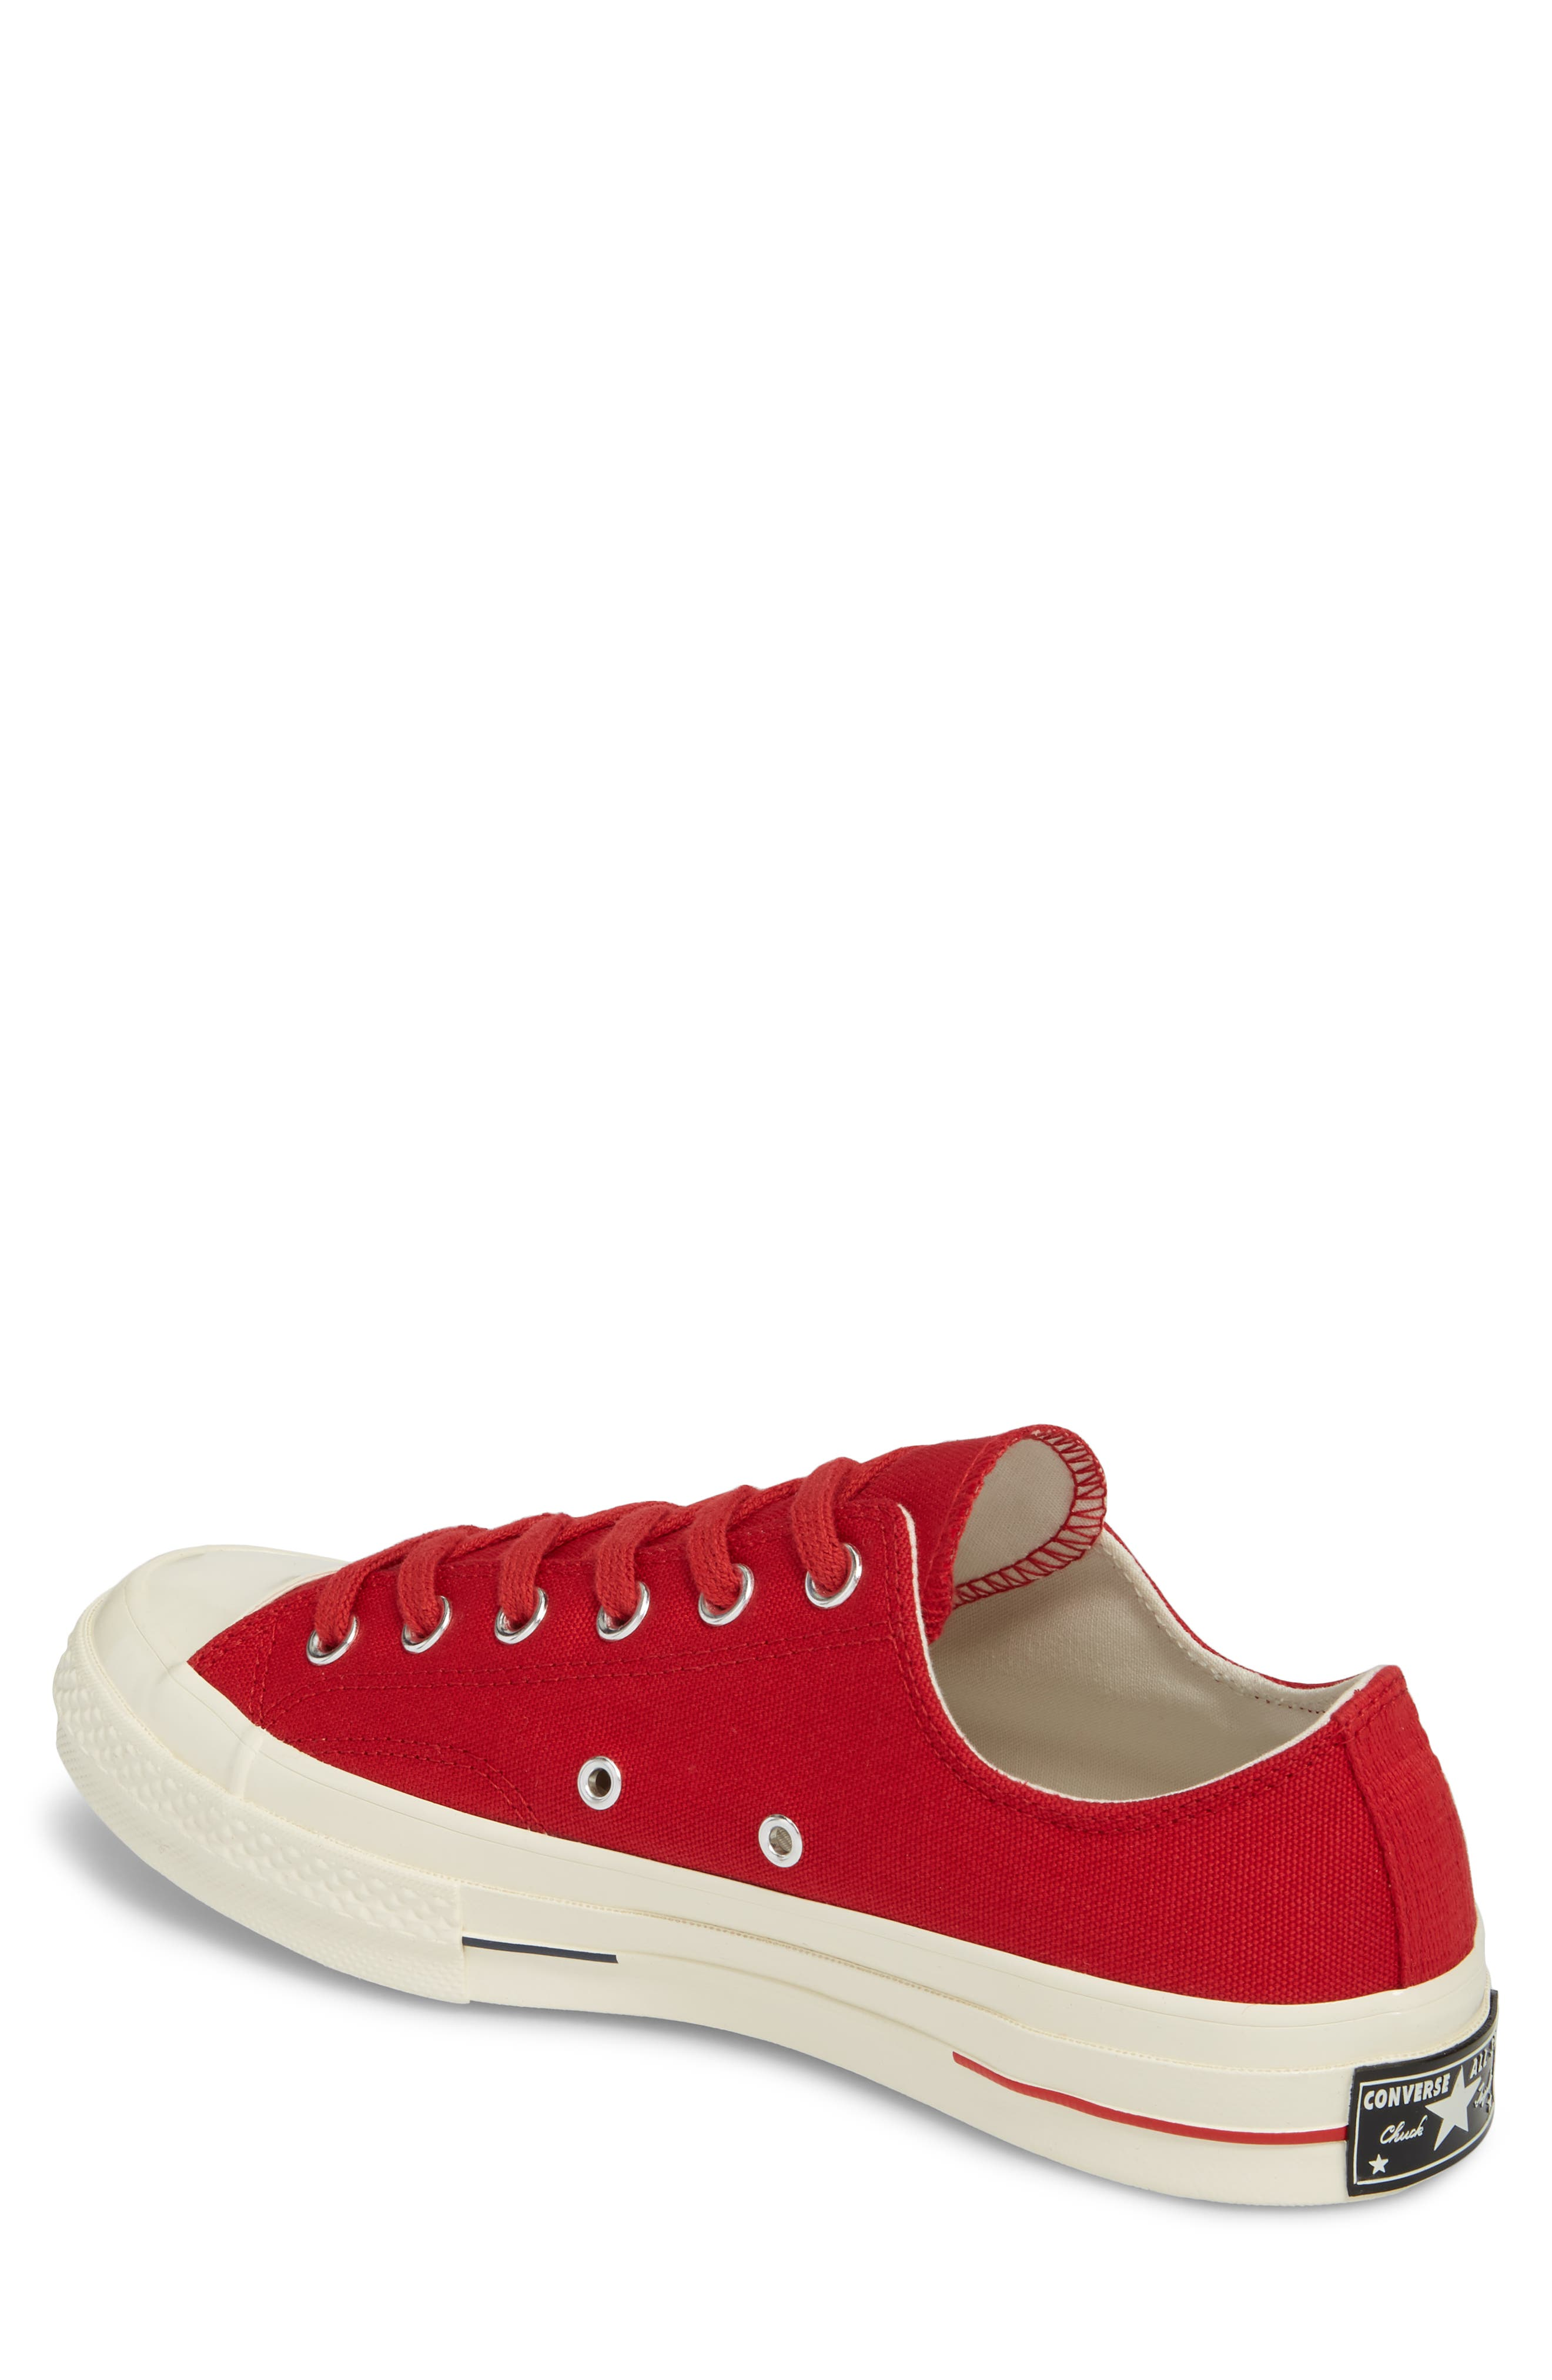 Chuck Taylor<sup>®</sup> All Star<sup>®</sup> '70s Heritage Low Top Sneaker,                             Alternate thumbnail 2, color,                             Gym Red